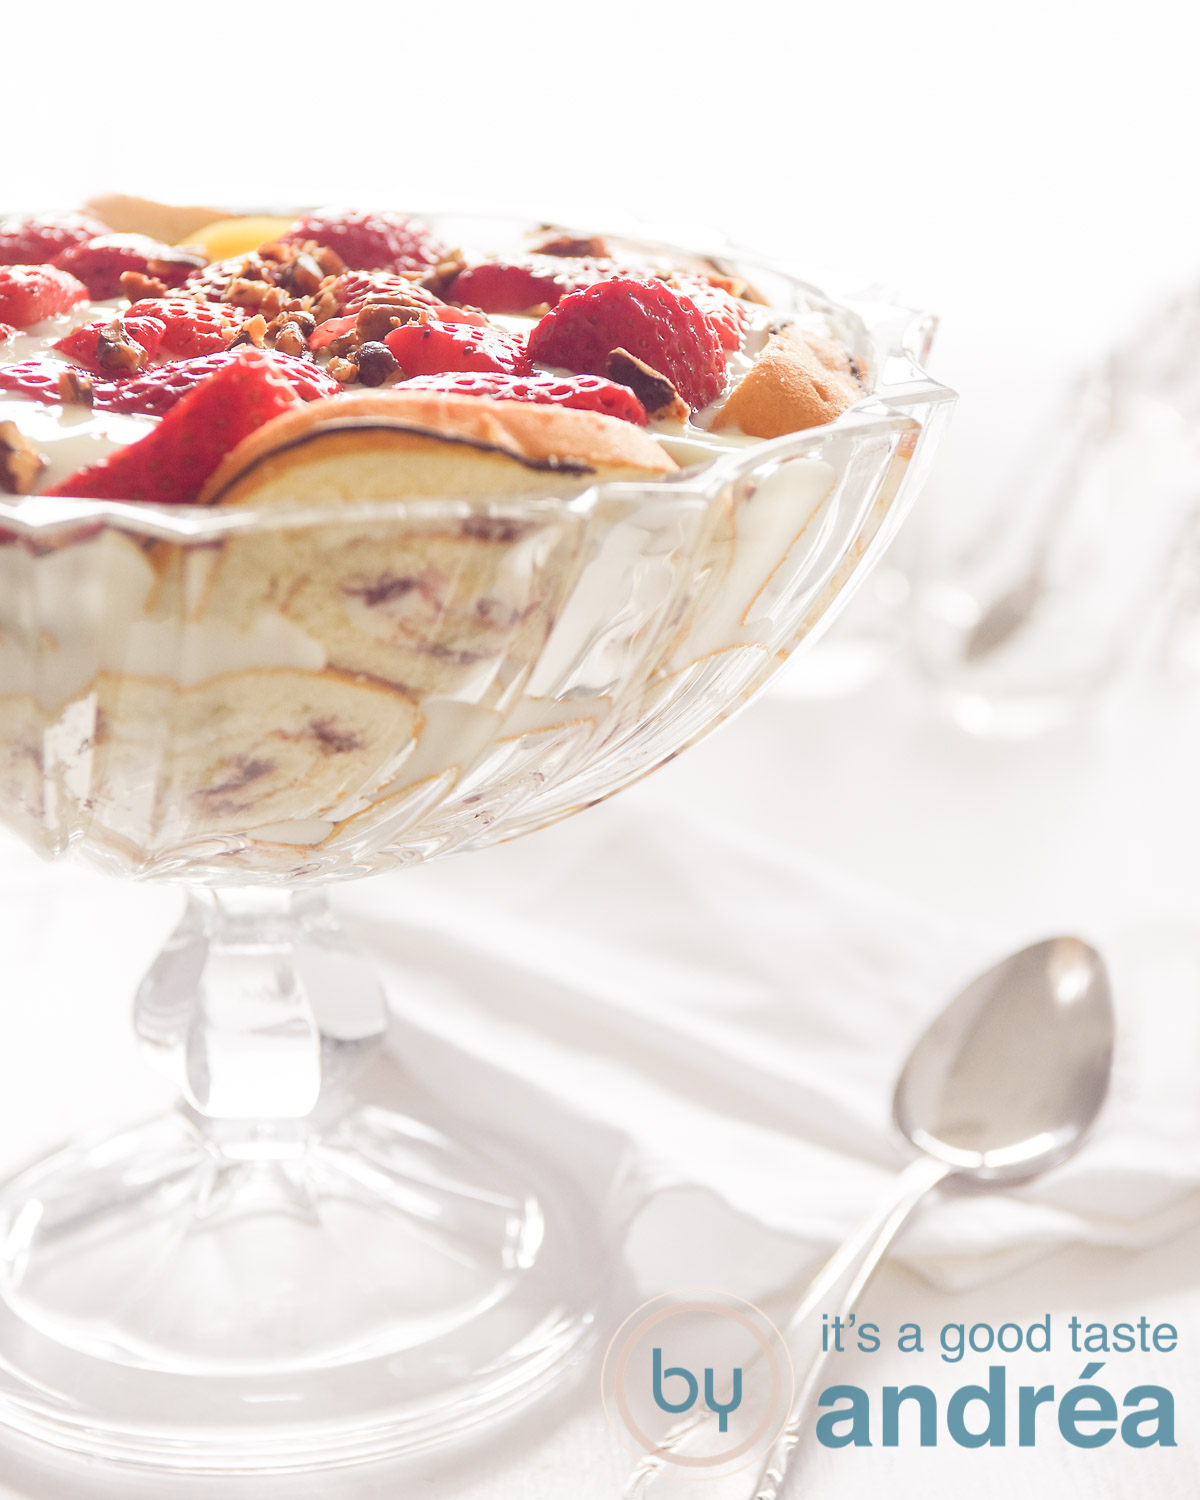 a bowl with strawberry trifle